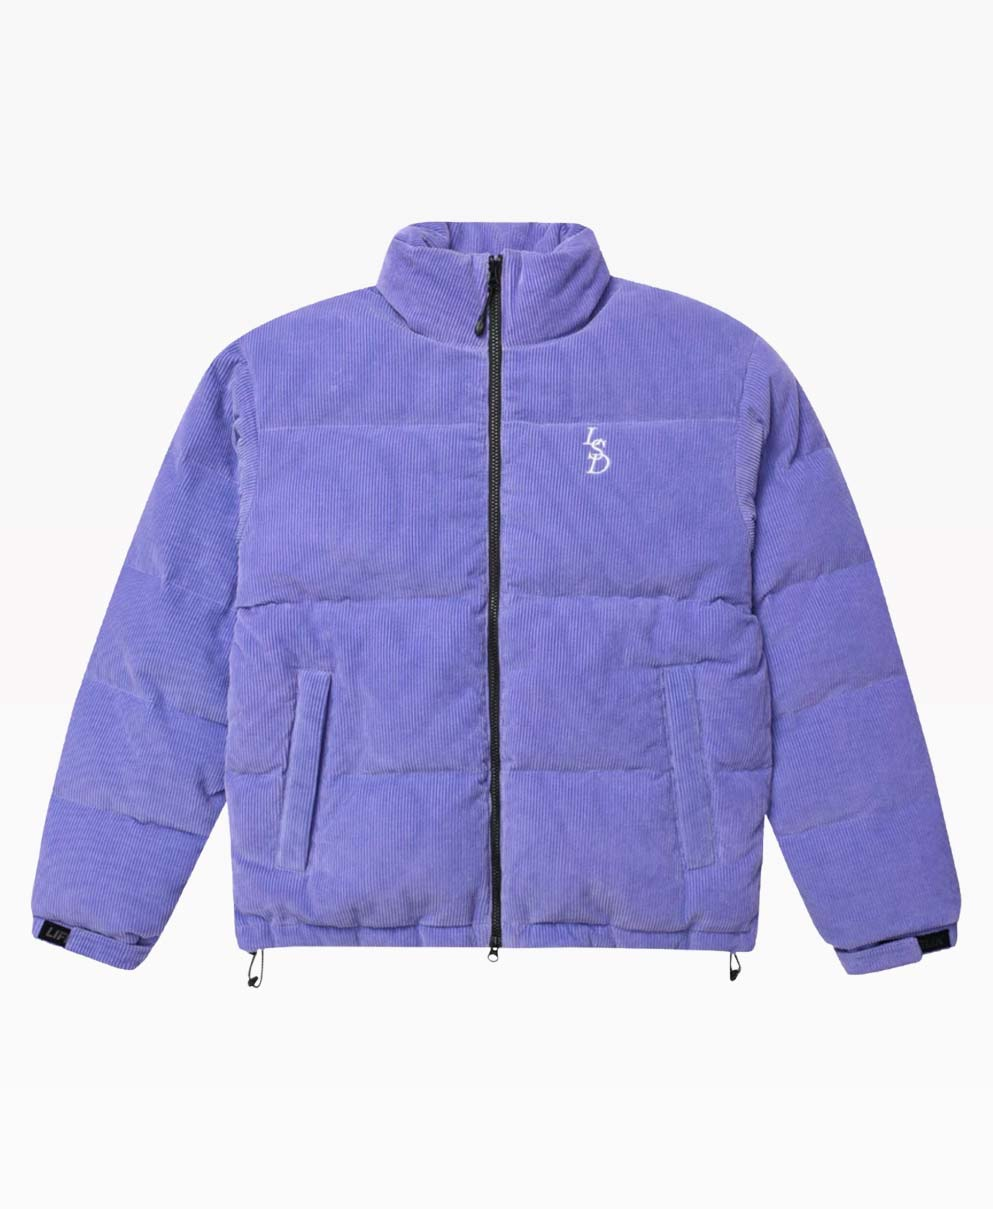 Lifesux Puffer Jacket Front